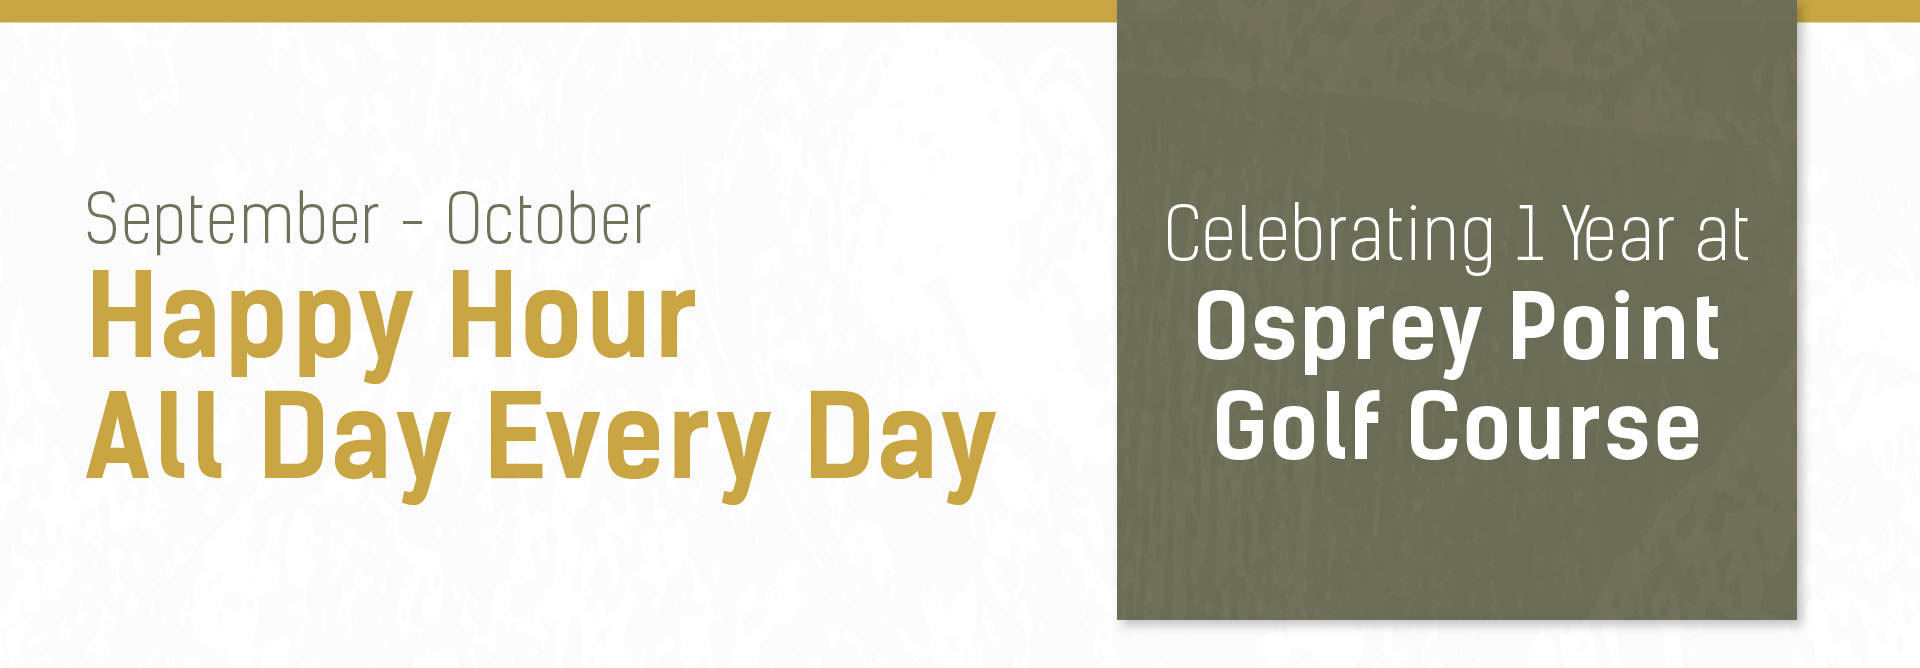 September - October Happy Hour All Day Every Day: Celebrating 1 Year at Osprey Point Golf Course